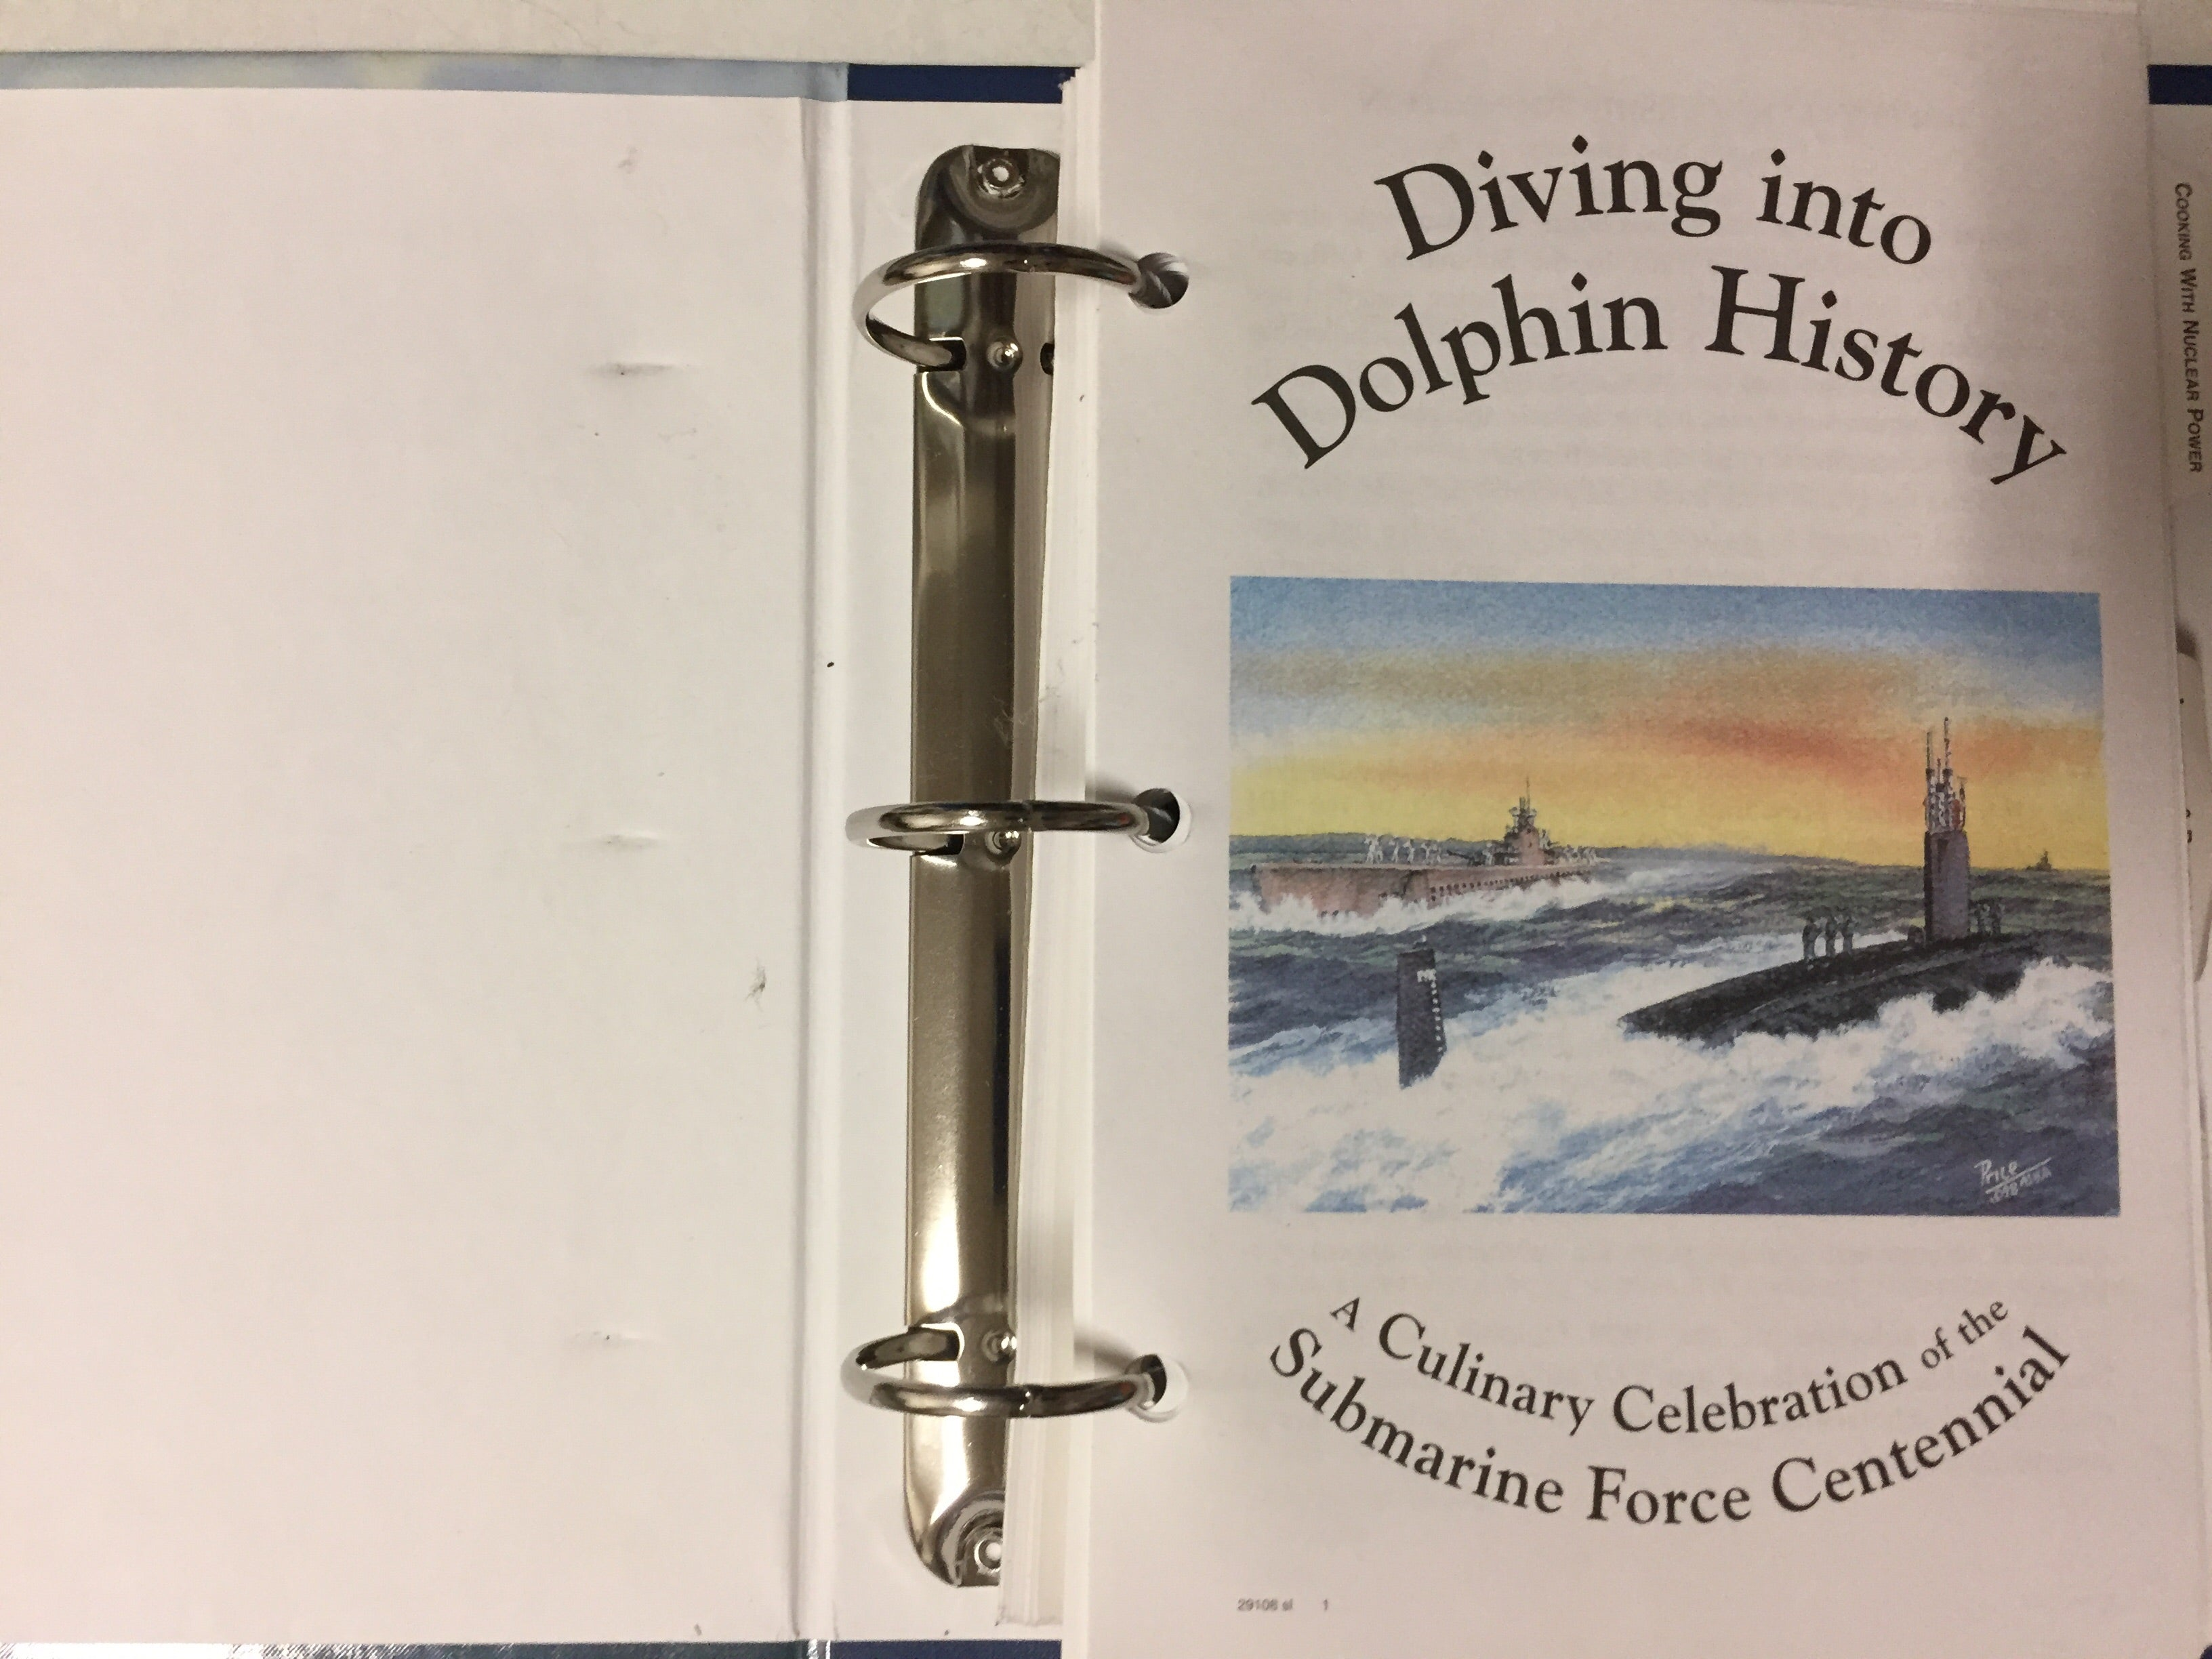 Diving Into Dolphin History A Culinary Celebration of the Submarine Force Centennial - Slickcatbooks